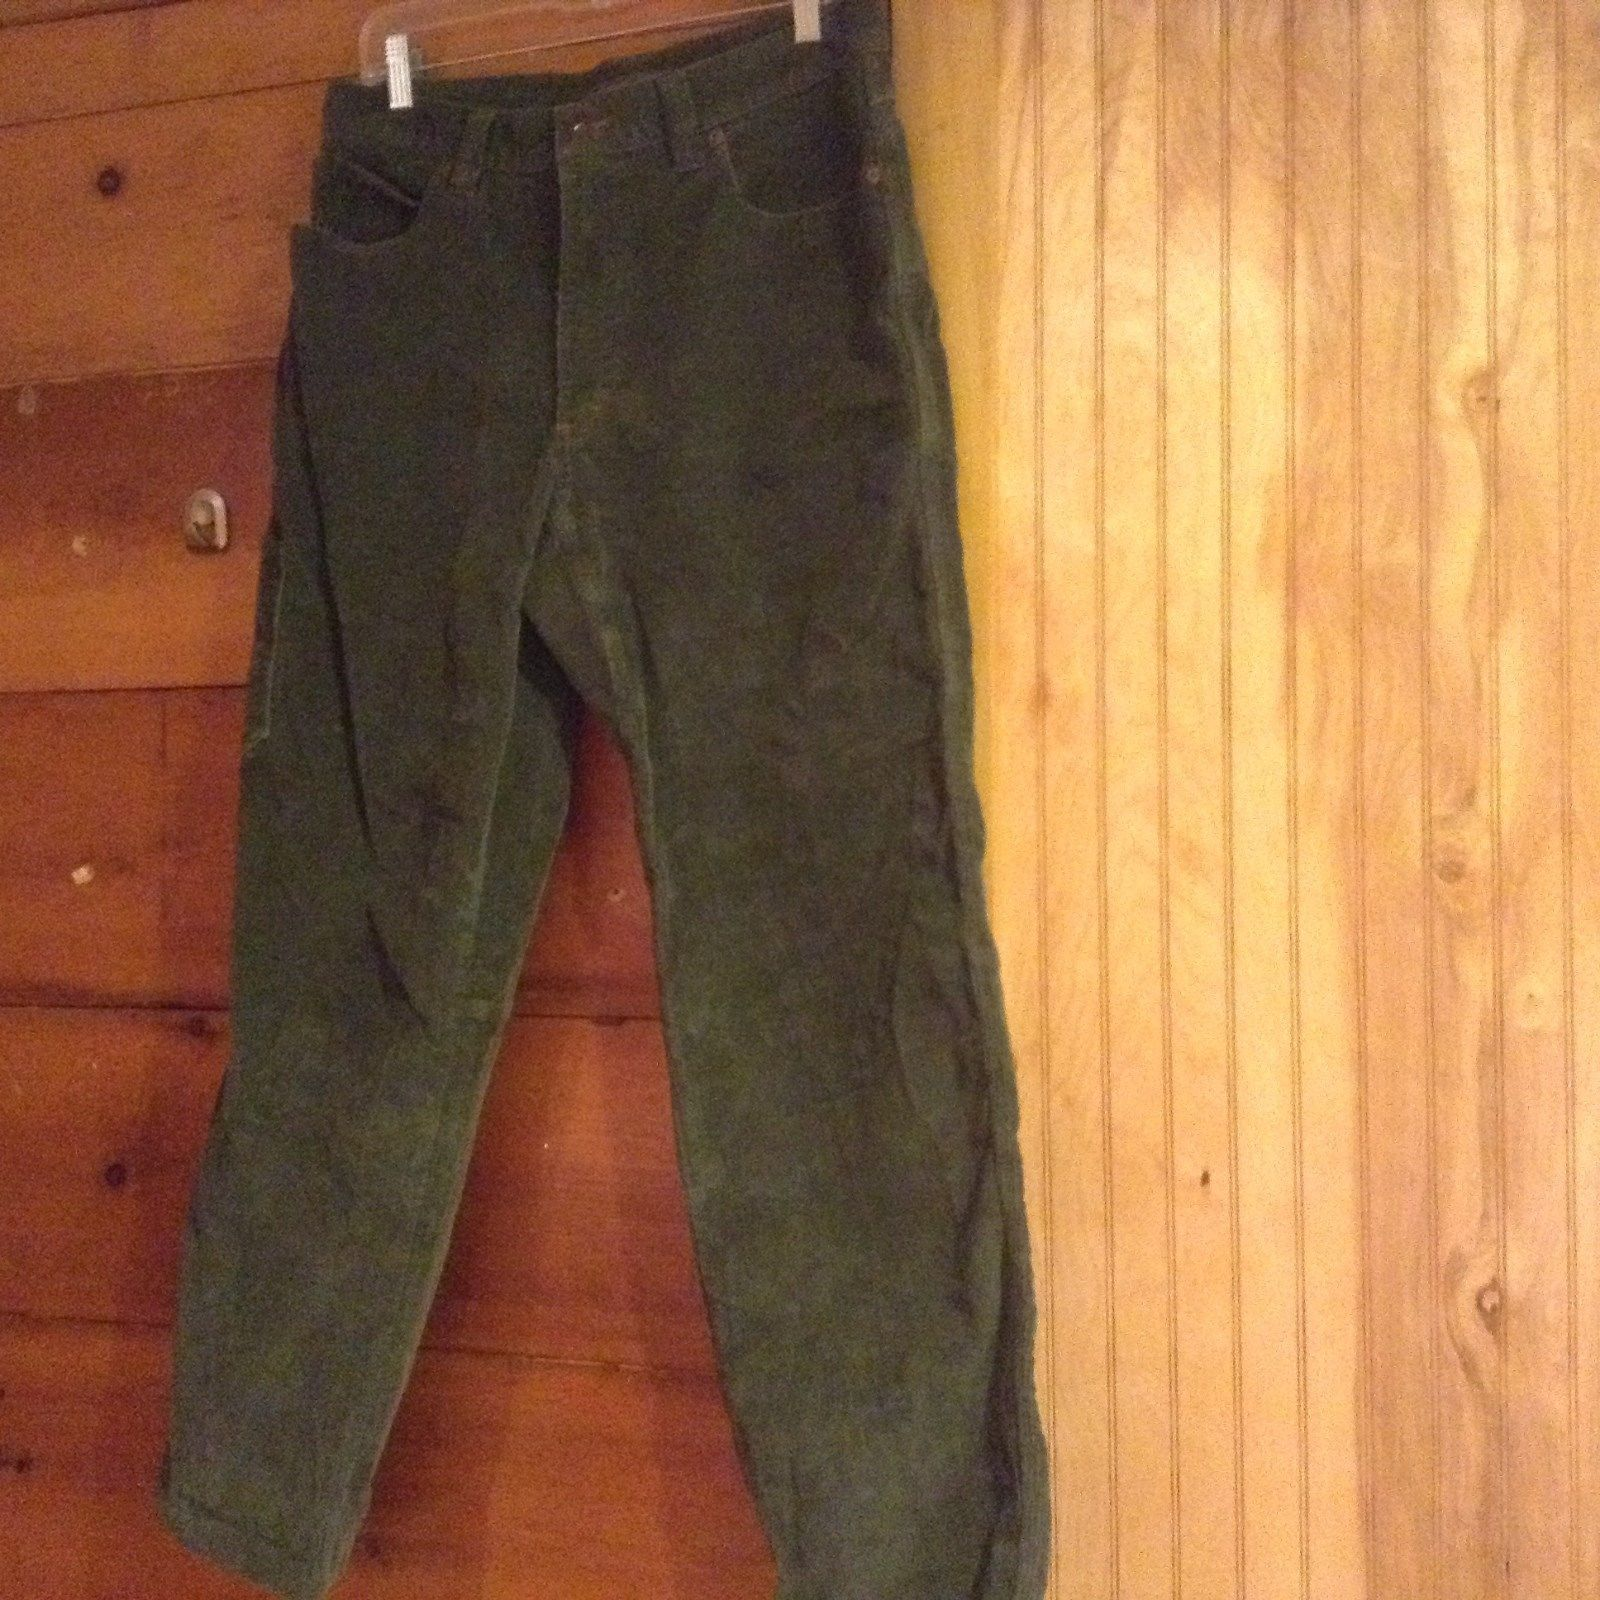 L L Bean Green Casual Pants 5 Pockets Button and Zipper Closure Size 33 by 30